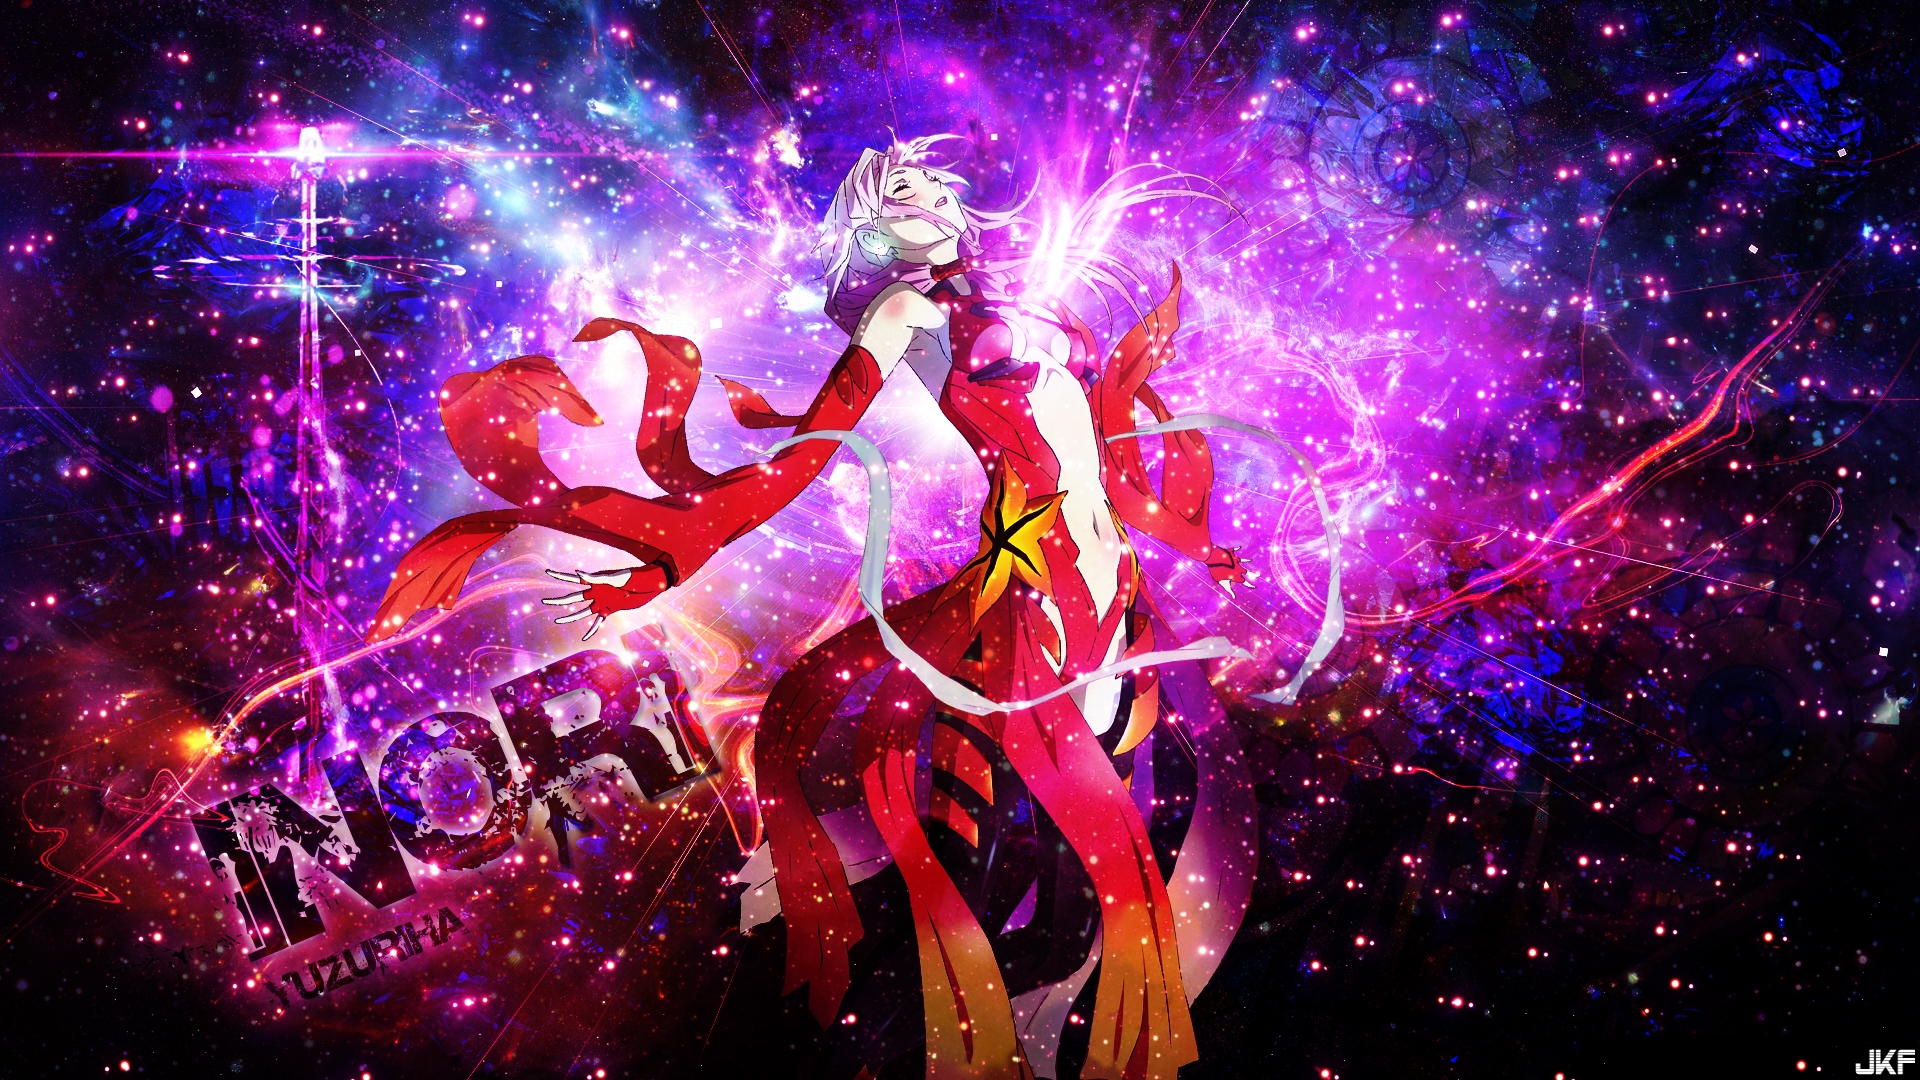 inori_wallpaper_2_by_dinocojv-d8f66sn.jpg